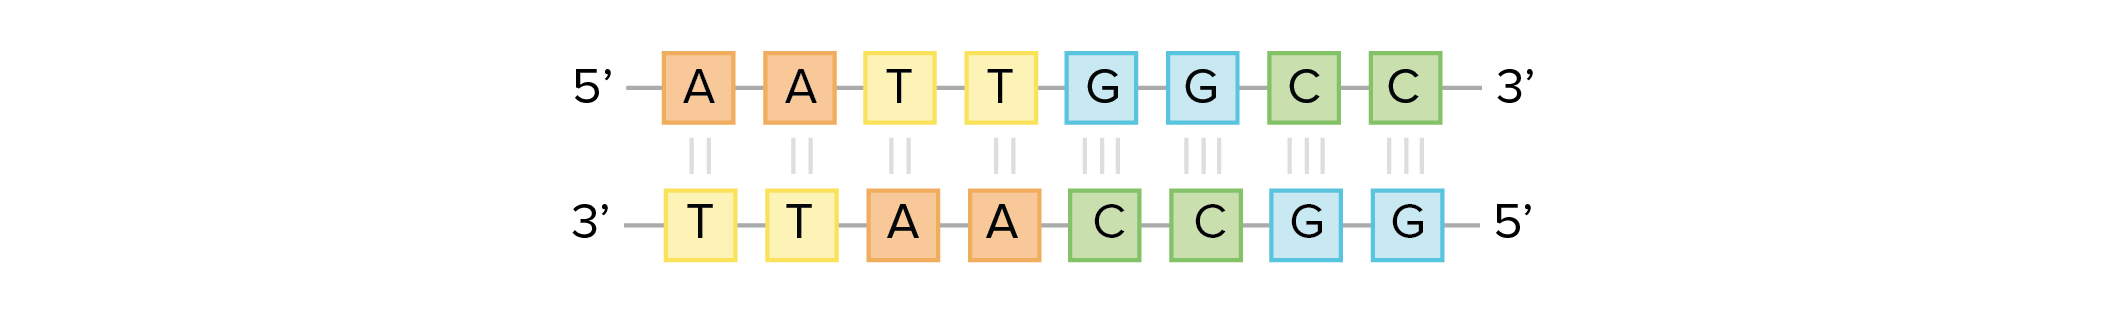 Dna Structure And Replication Review Article Khan Academy